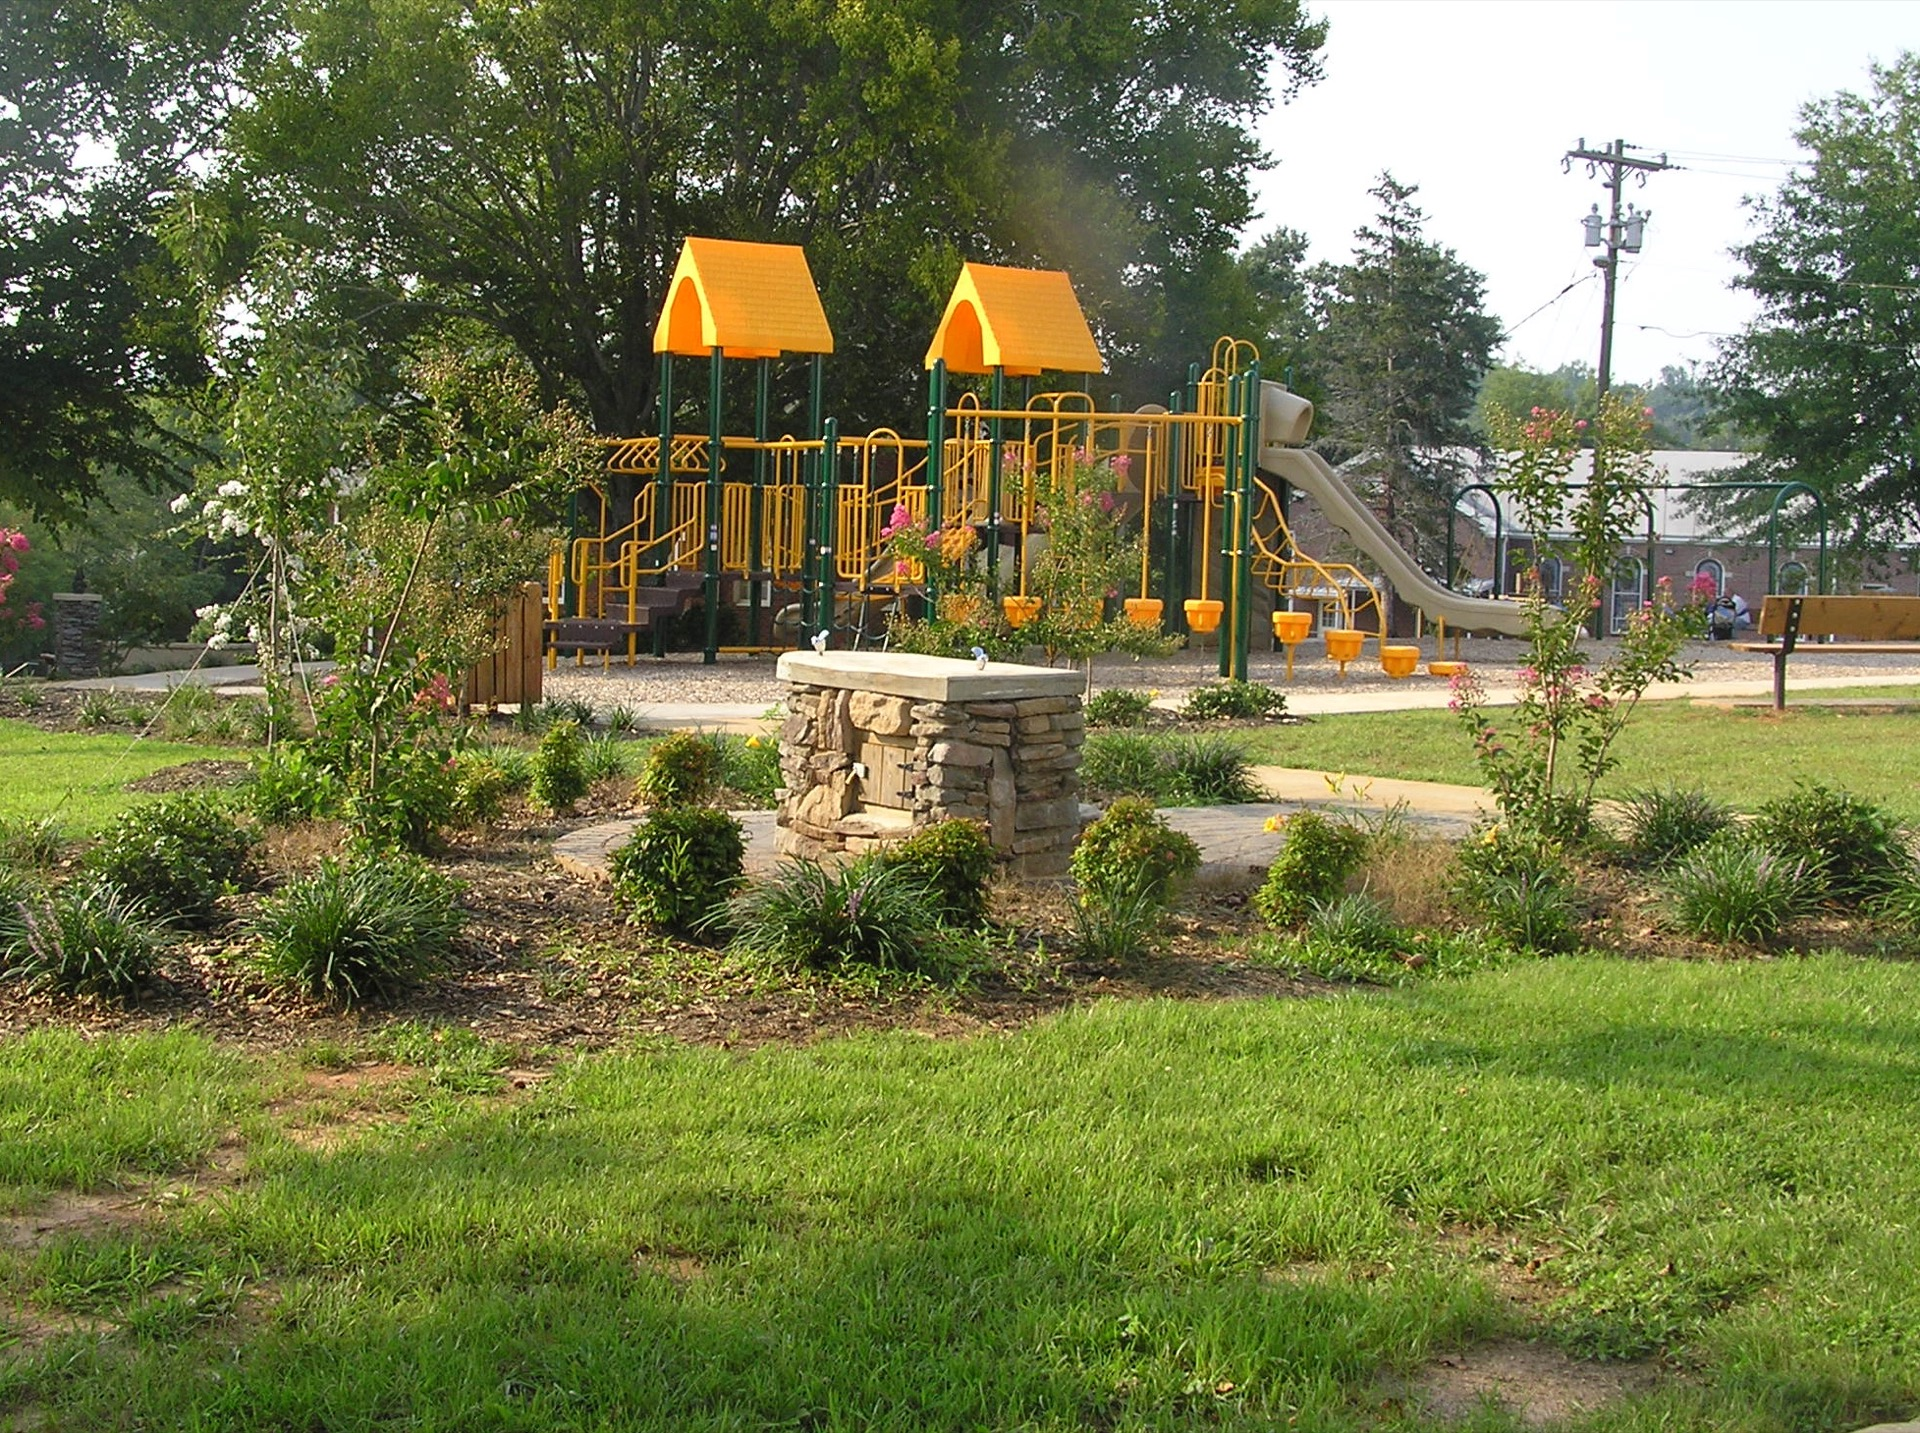 Slater Community Center Playground